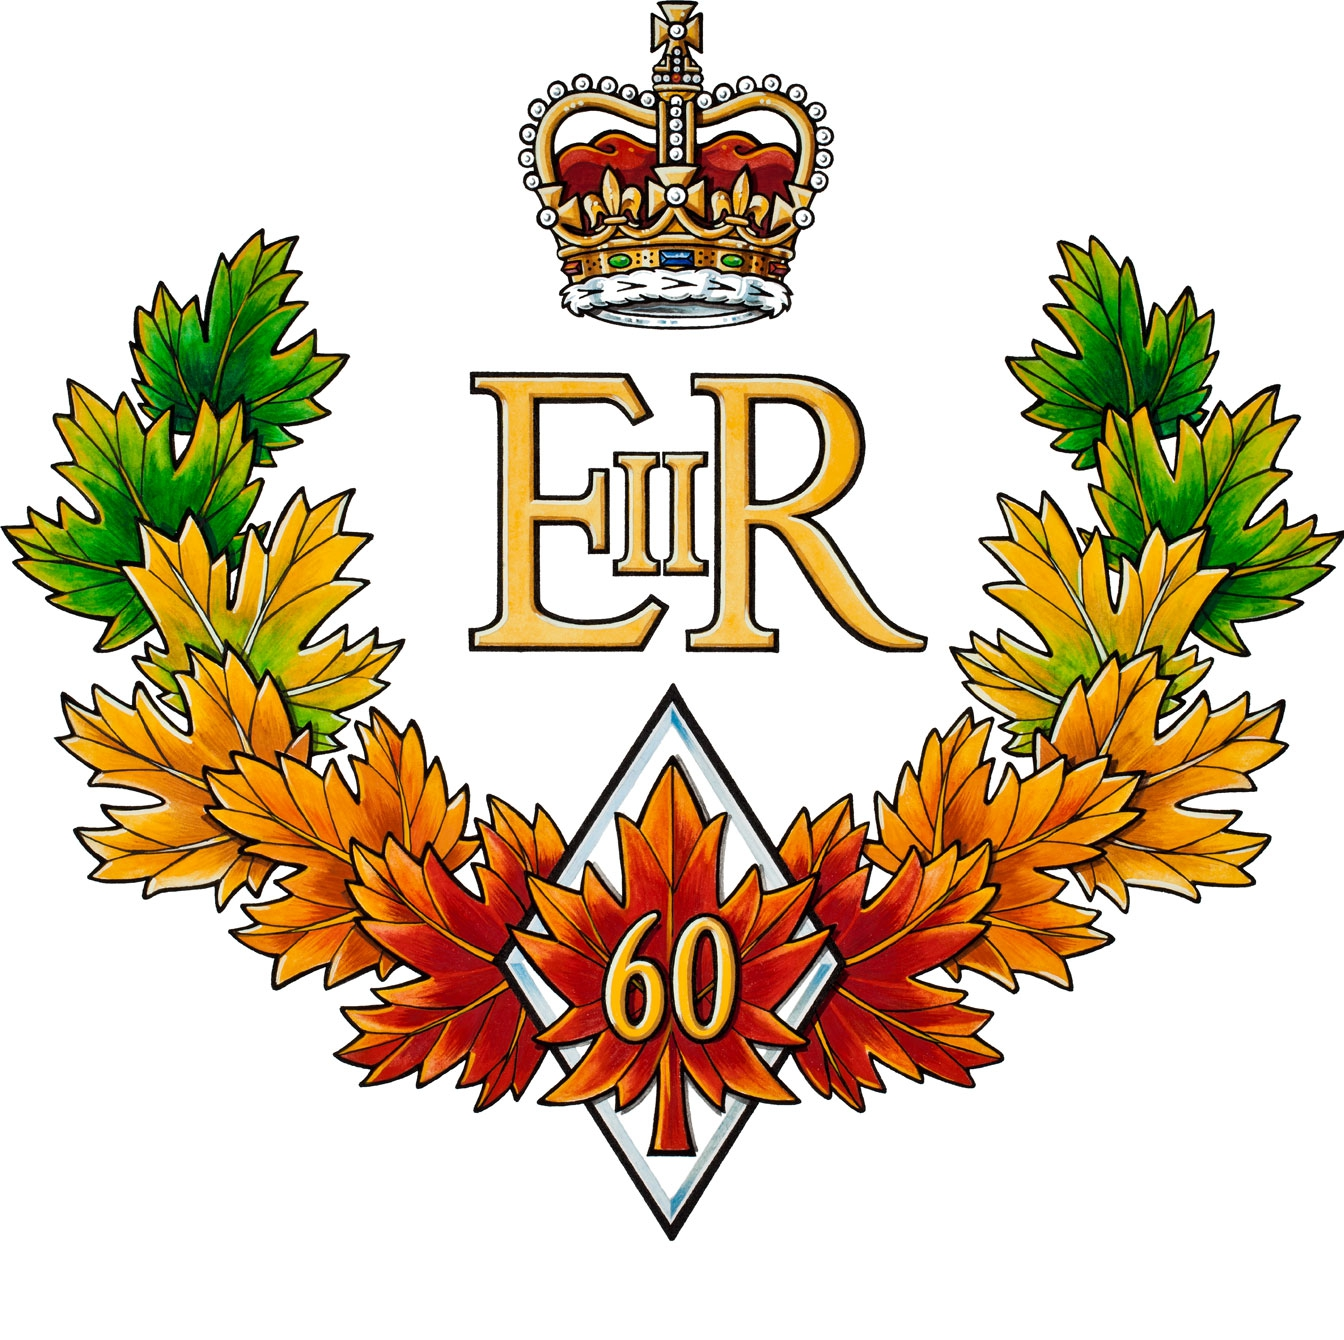 Queen Elizabeth II Diamond Jubilee Medal Recipient